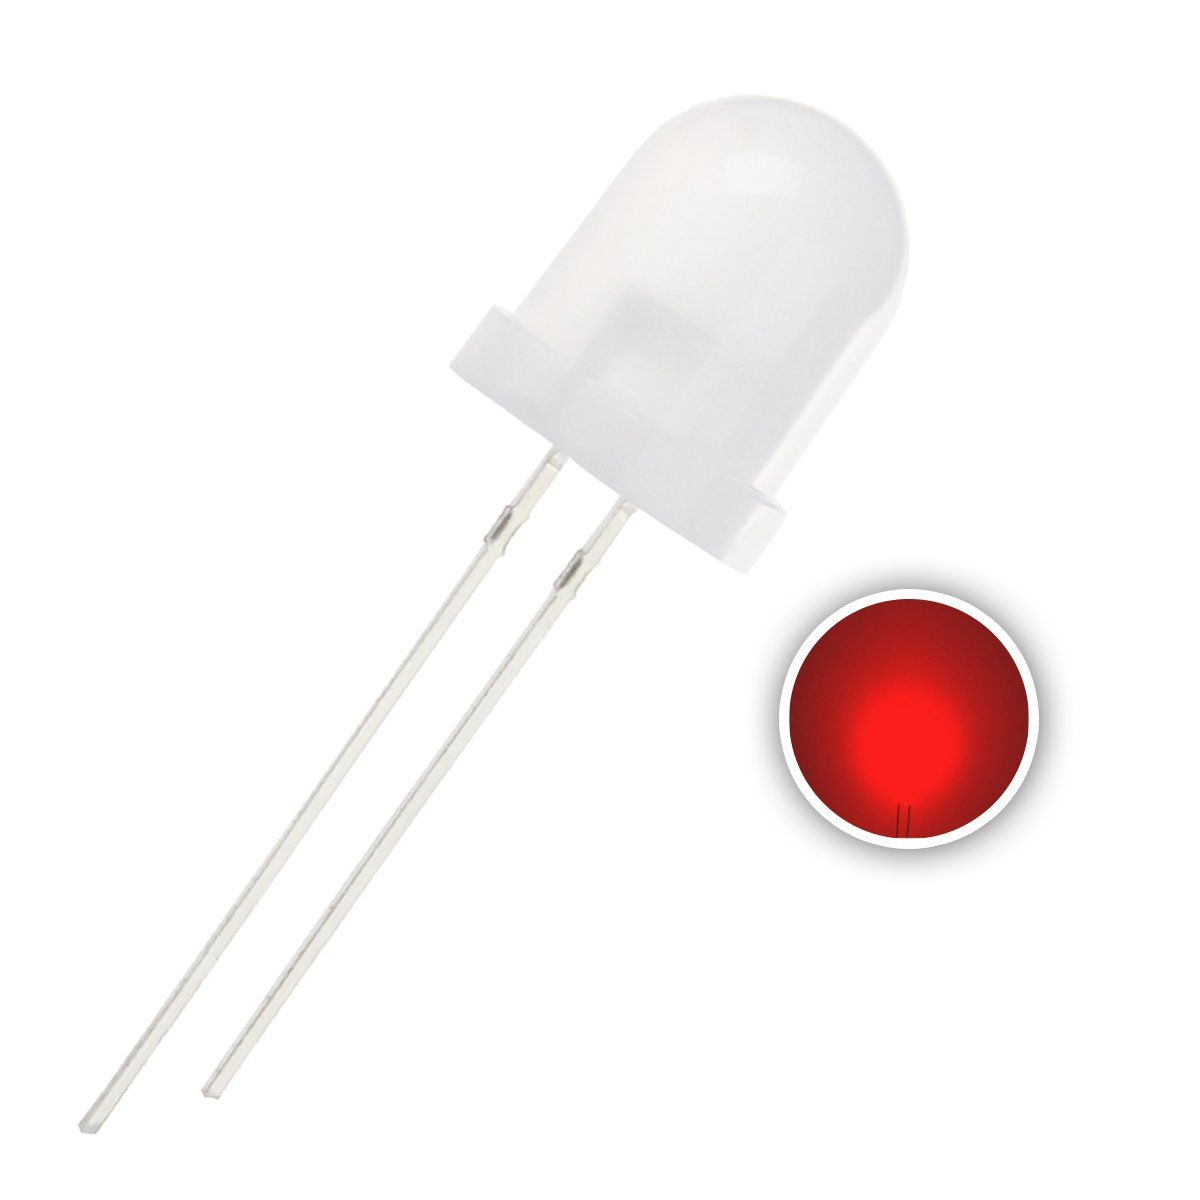 Chanzon 50 Pcs 10mm Red Led Diode Lights Diffused Round Dc 2v 20ma Lighting Bulb Lamps Electronics Components Light With Images Light Emitting Diode Led Diodes Light Bulb